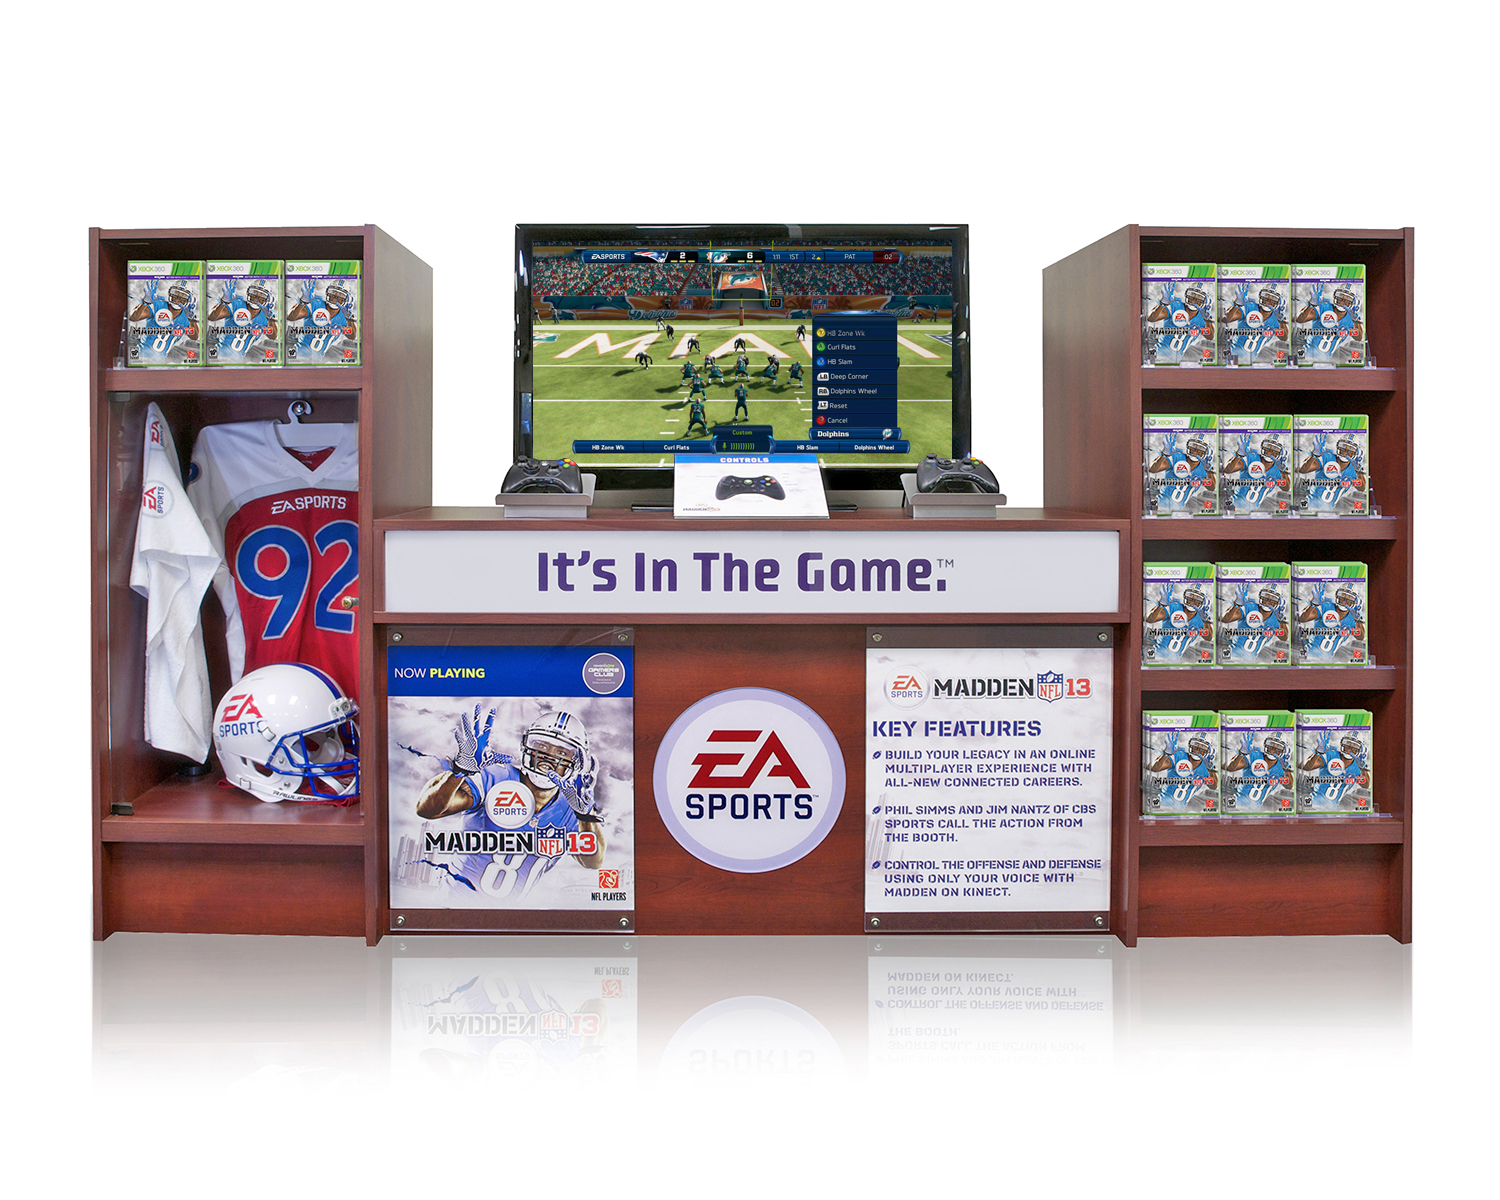 EA Sports Madden Video Game retail product display.